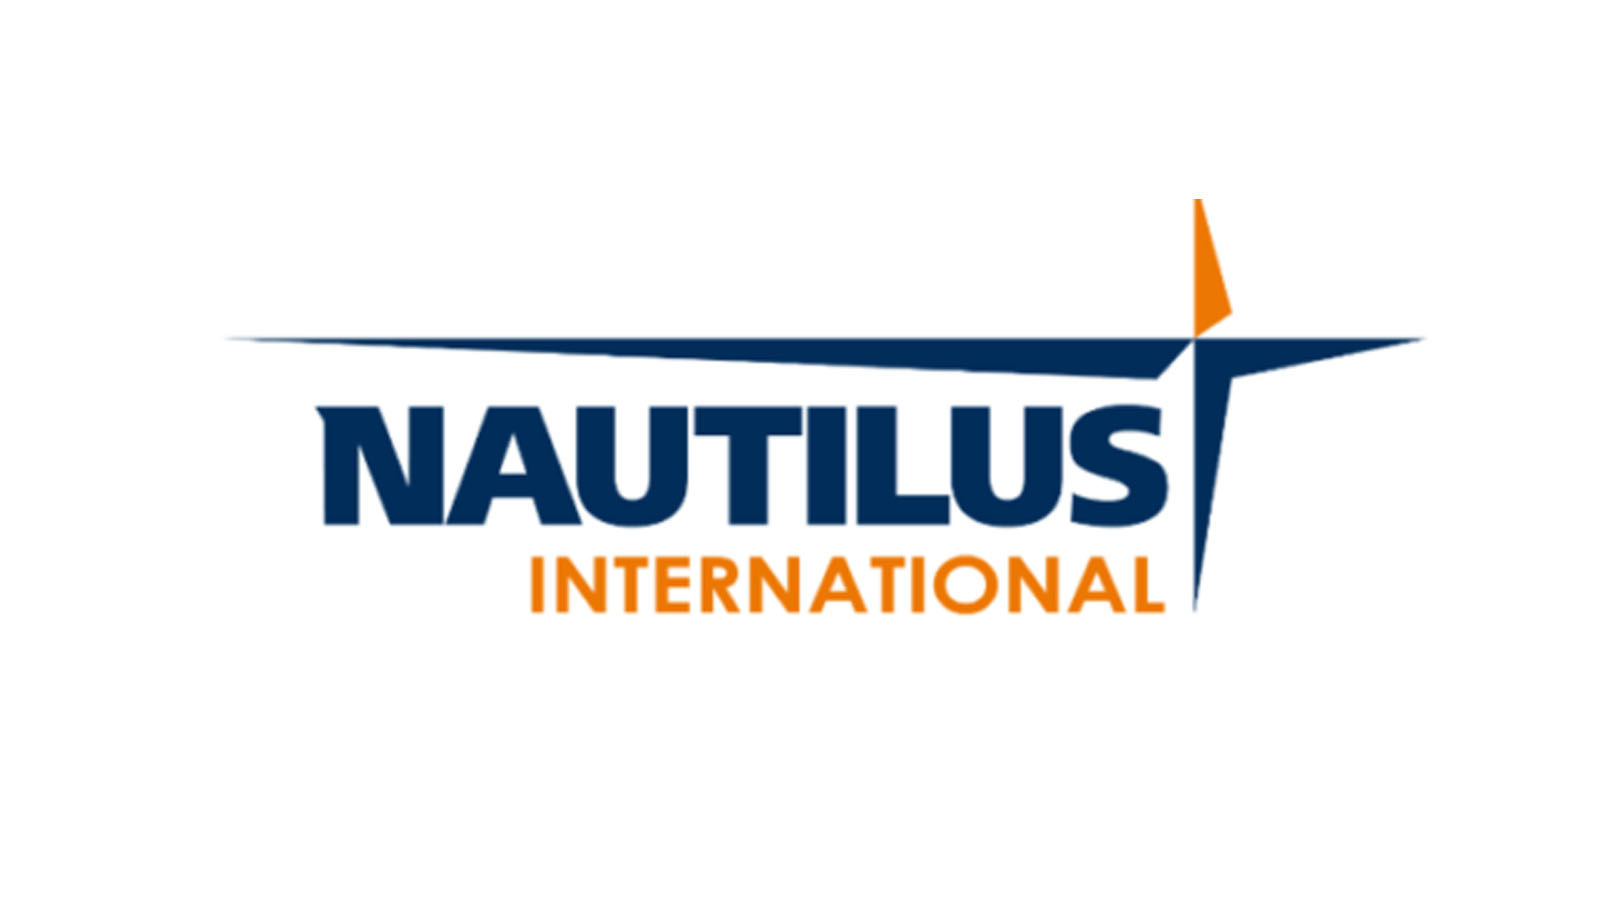 Martek and Nautilus join forces to launch first-of-its-kind maritime healthcare survey